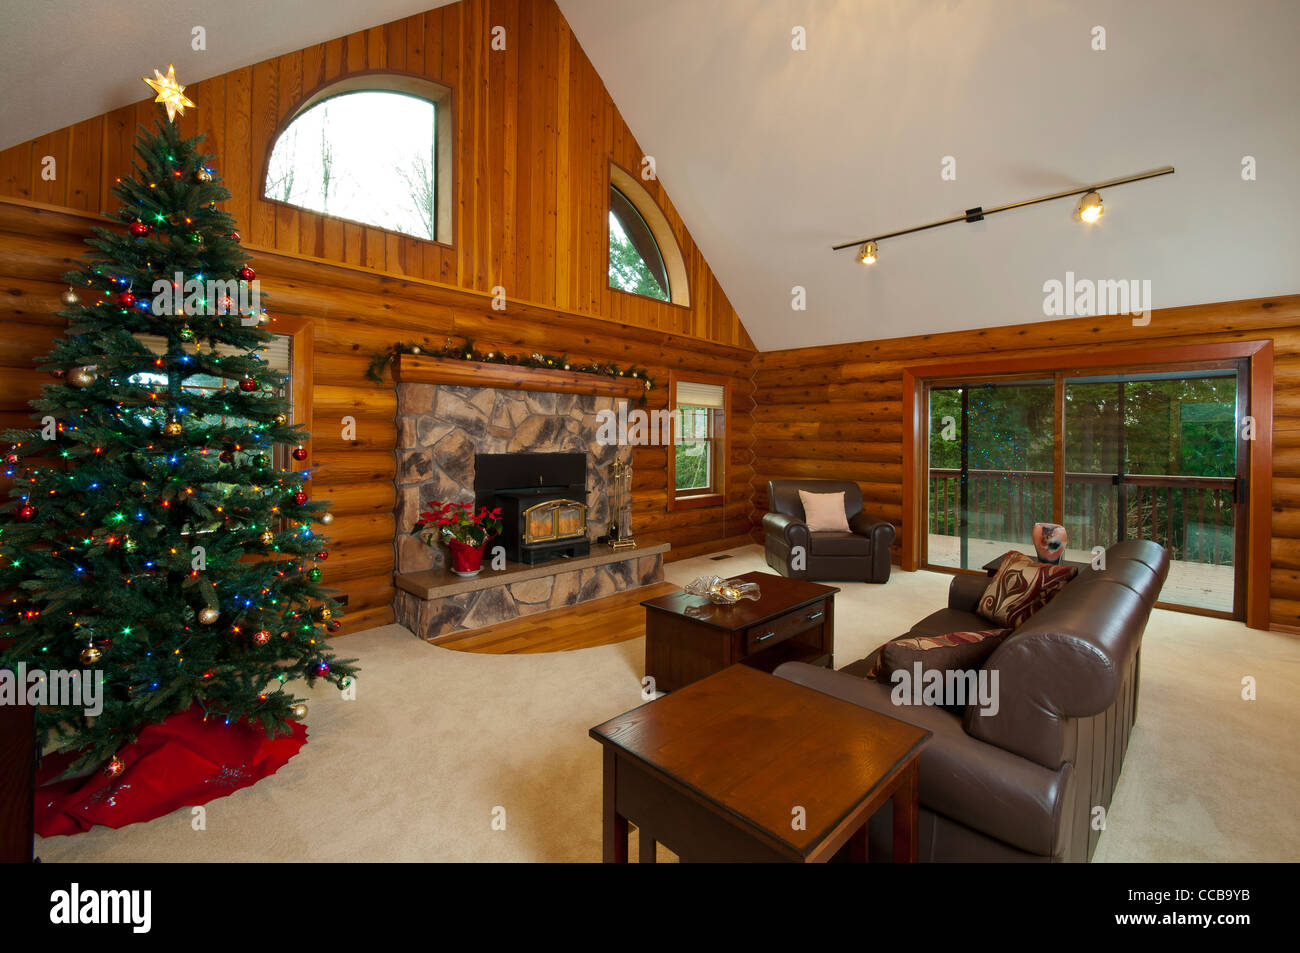 Log Cabin Living Room, Wide Angle View, Showing Fireplace, Stove, And  Sliding Glass Door To Woods Outside.